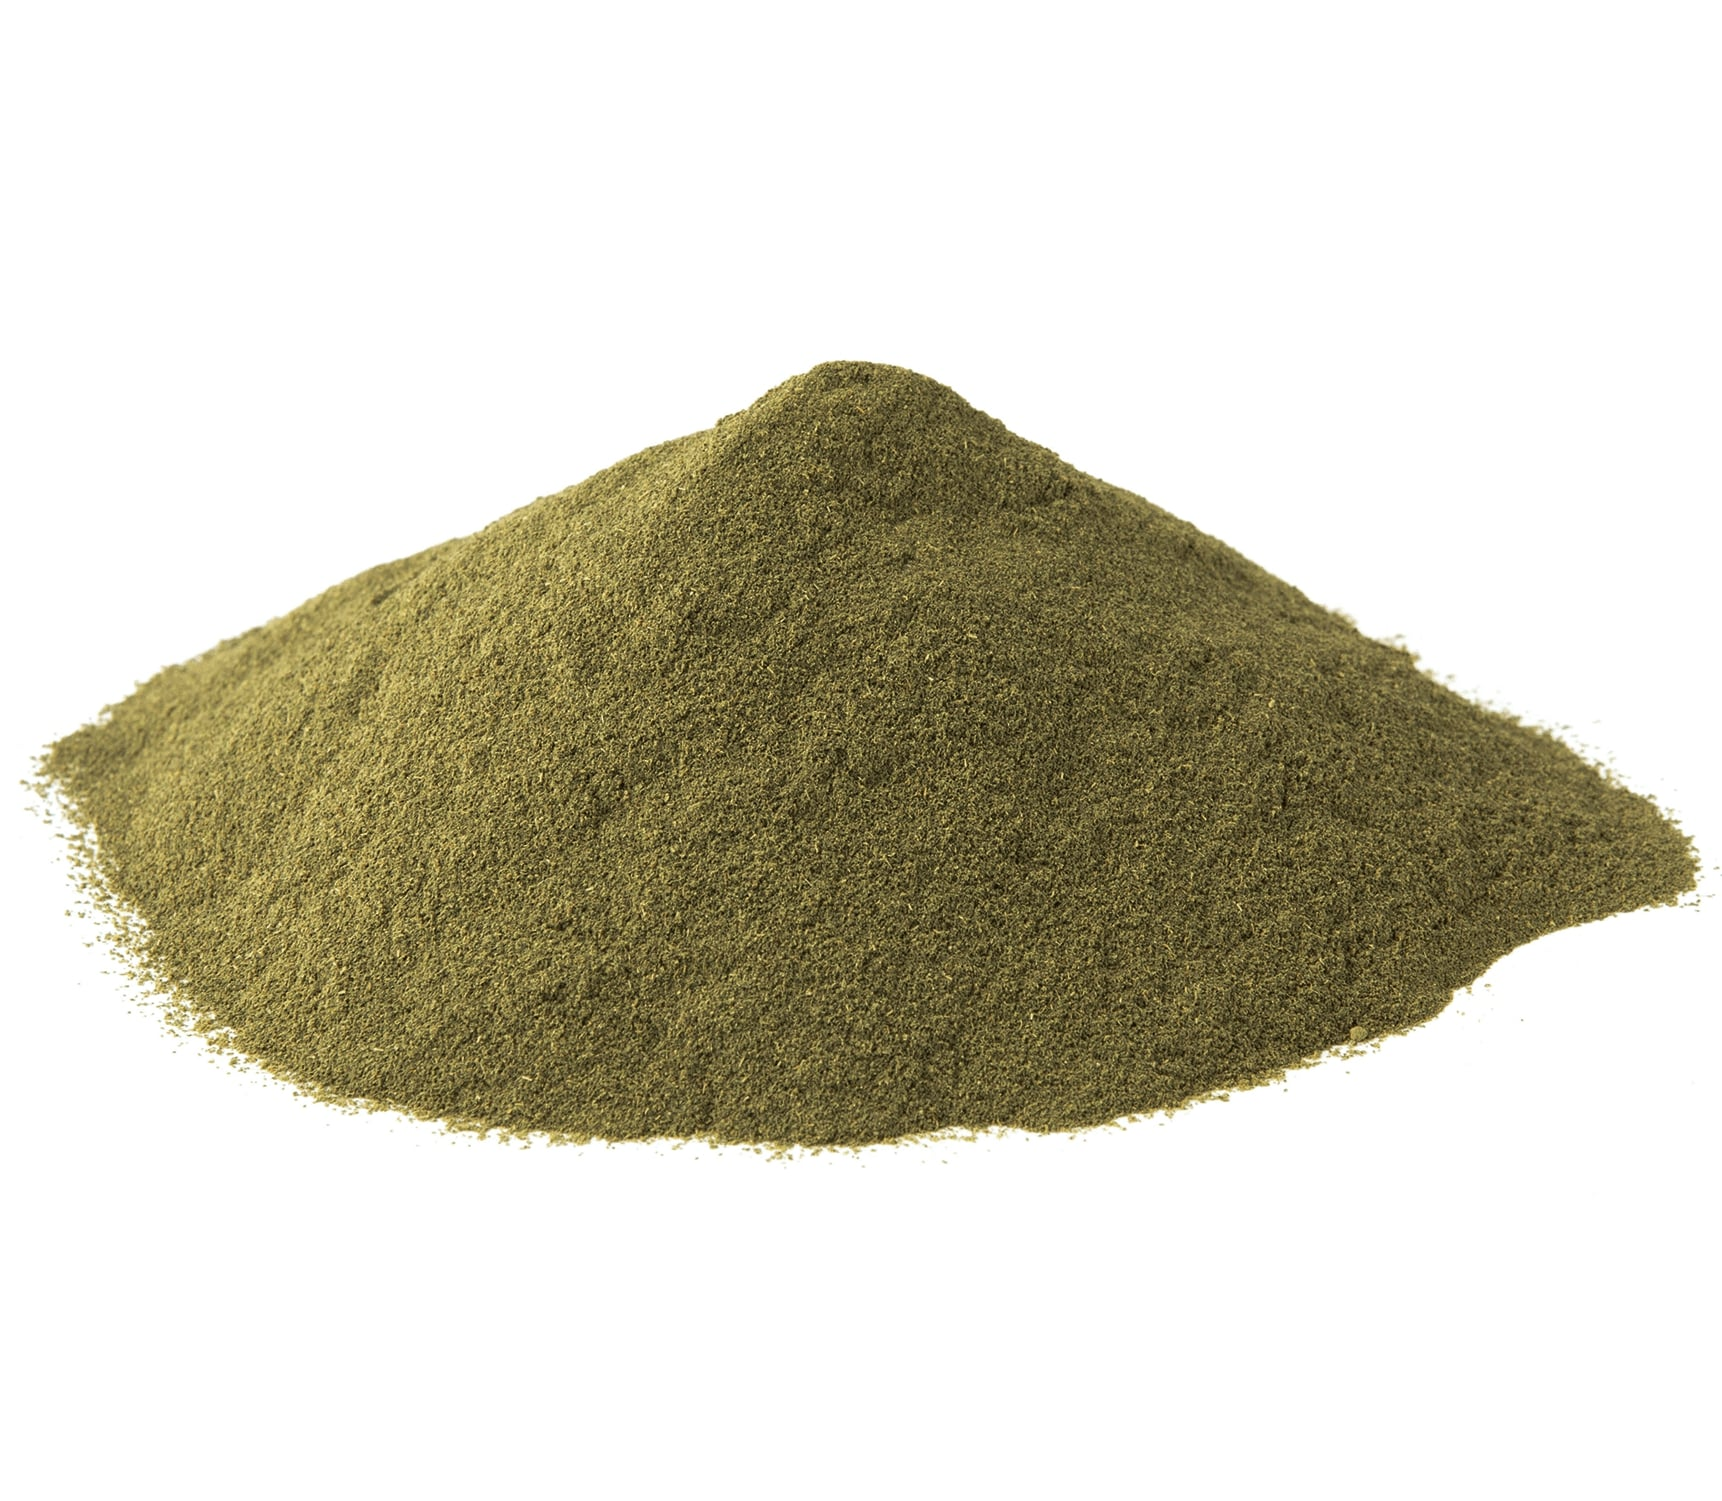 White Vein Indo Kratom for Sale